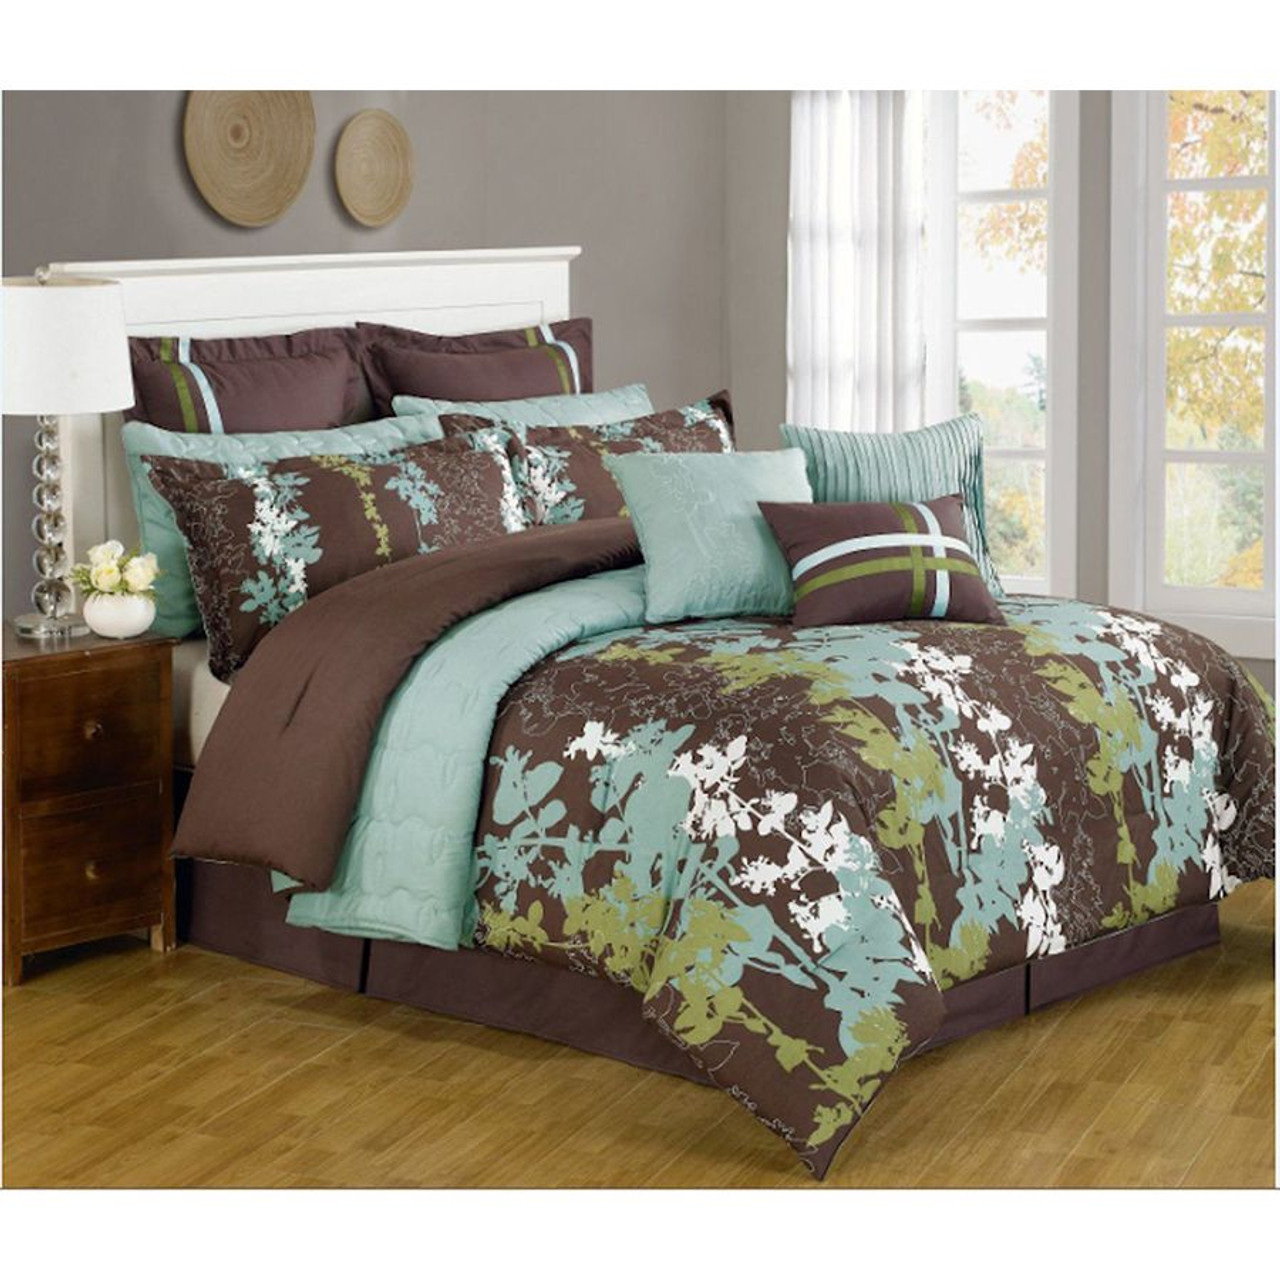 12 Pc. Teal, Green, Brown and White Floral Print Comforter Set with Quilt Included